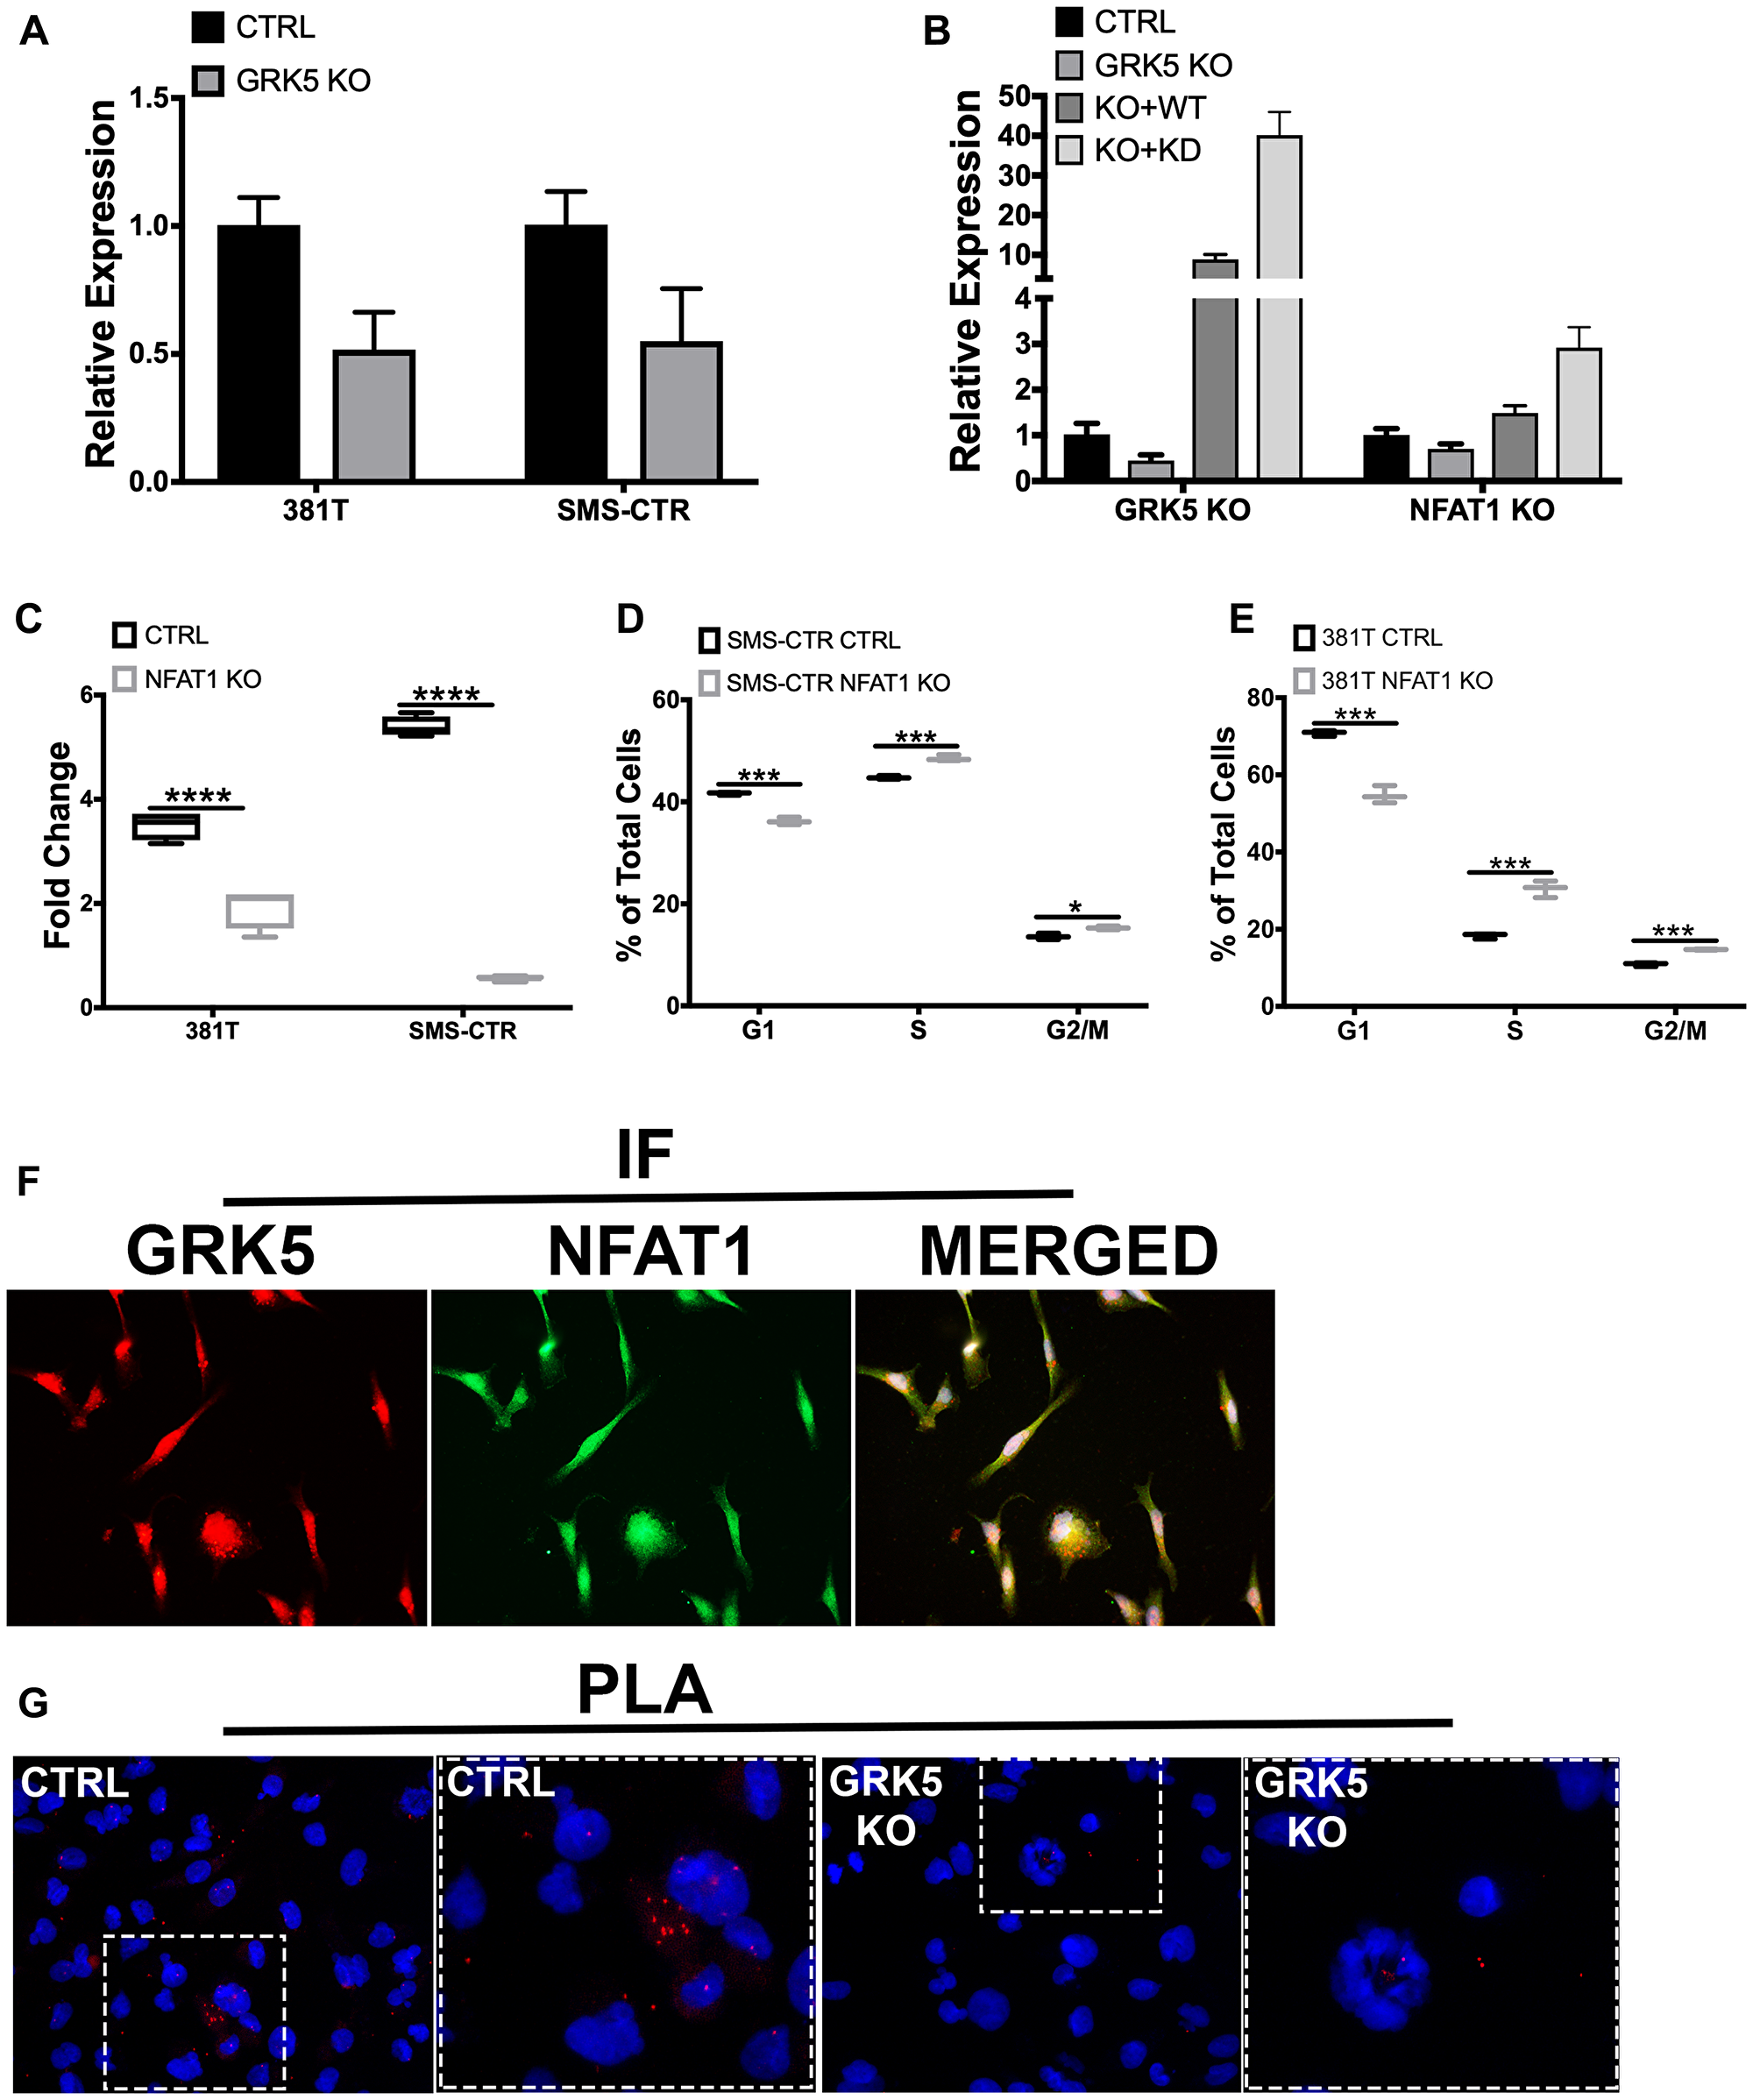 NFAT1 expression is regulated by GRK5 in a kinase-independent manner.